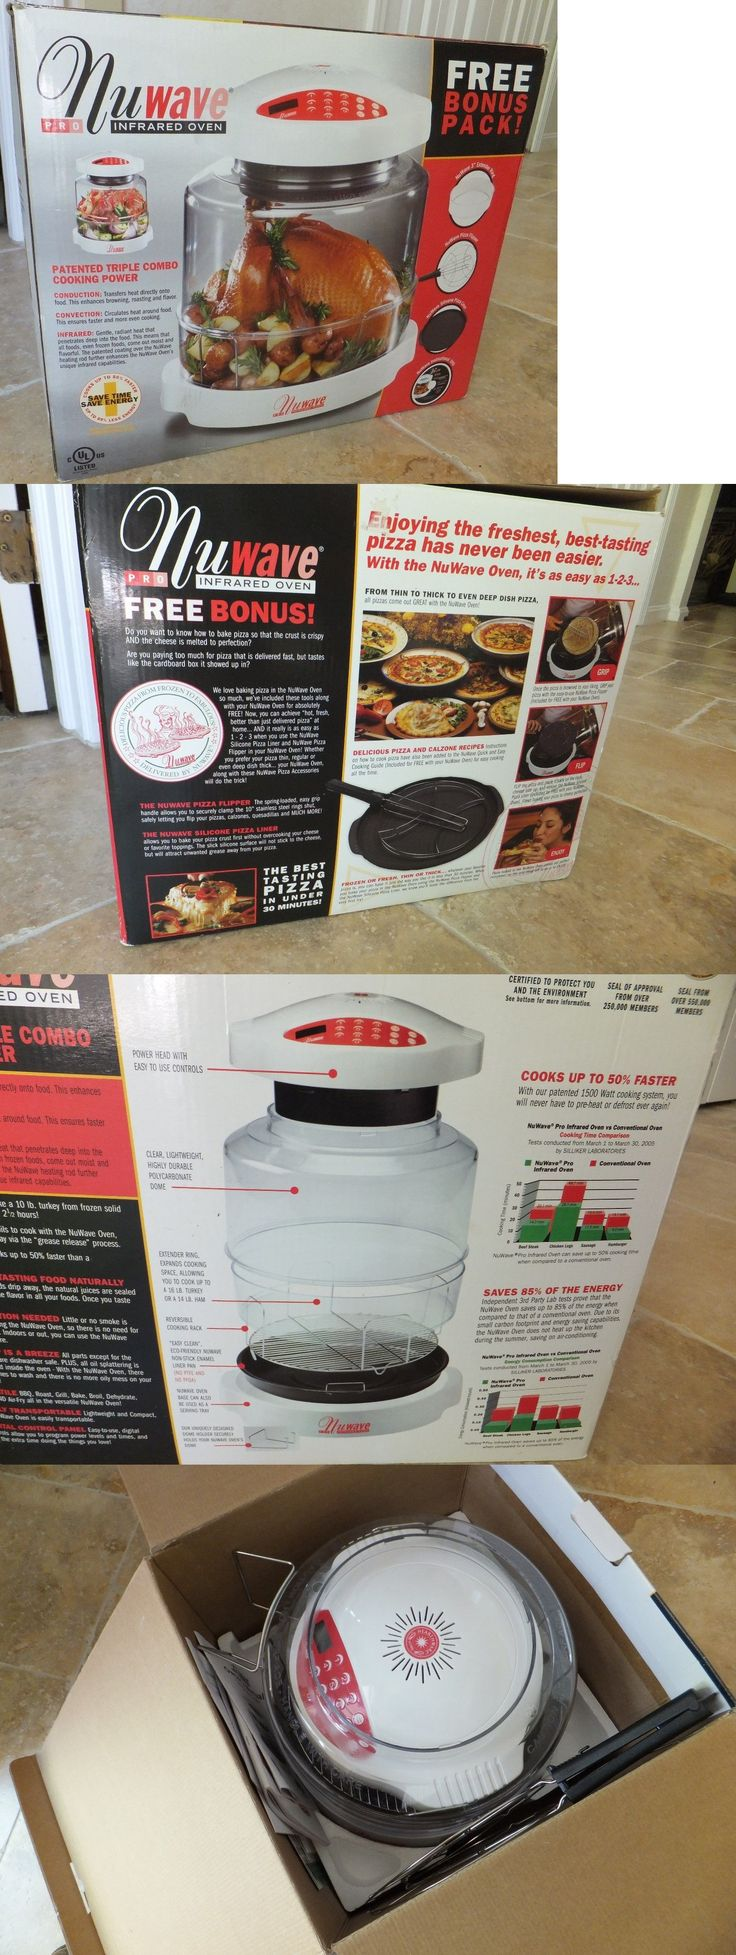 Infrared and Convection Ovens 150139: Nuwave Pro Infrared Oven With Pizza Baking Kit And Extender Ring New Unused -> BUY IT NOW ONLY: $83.99 on eBay!